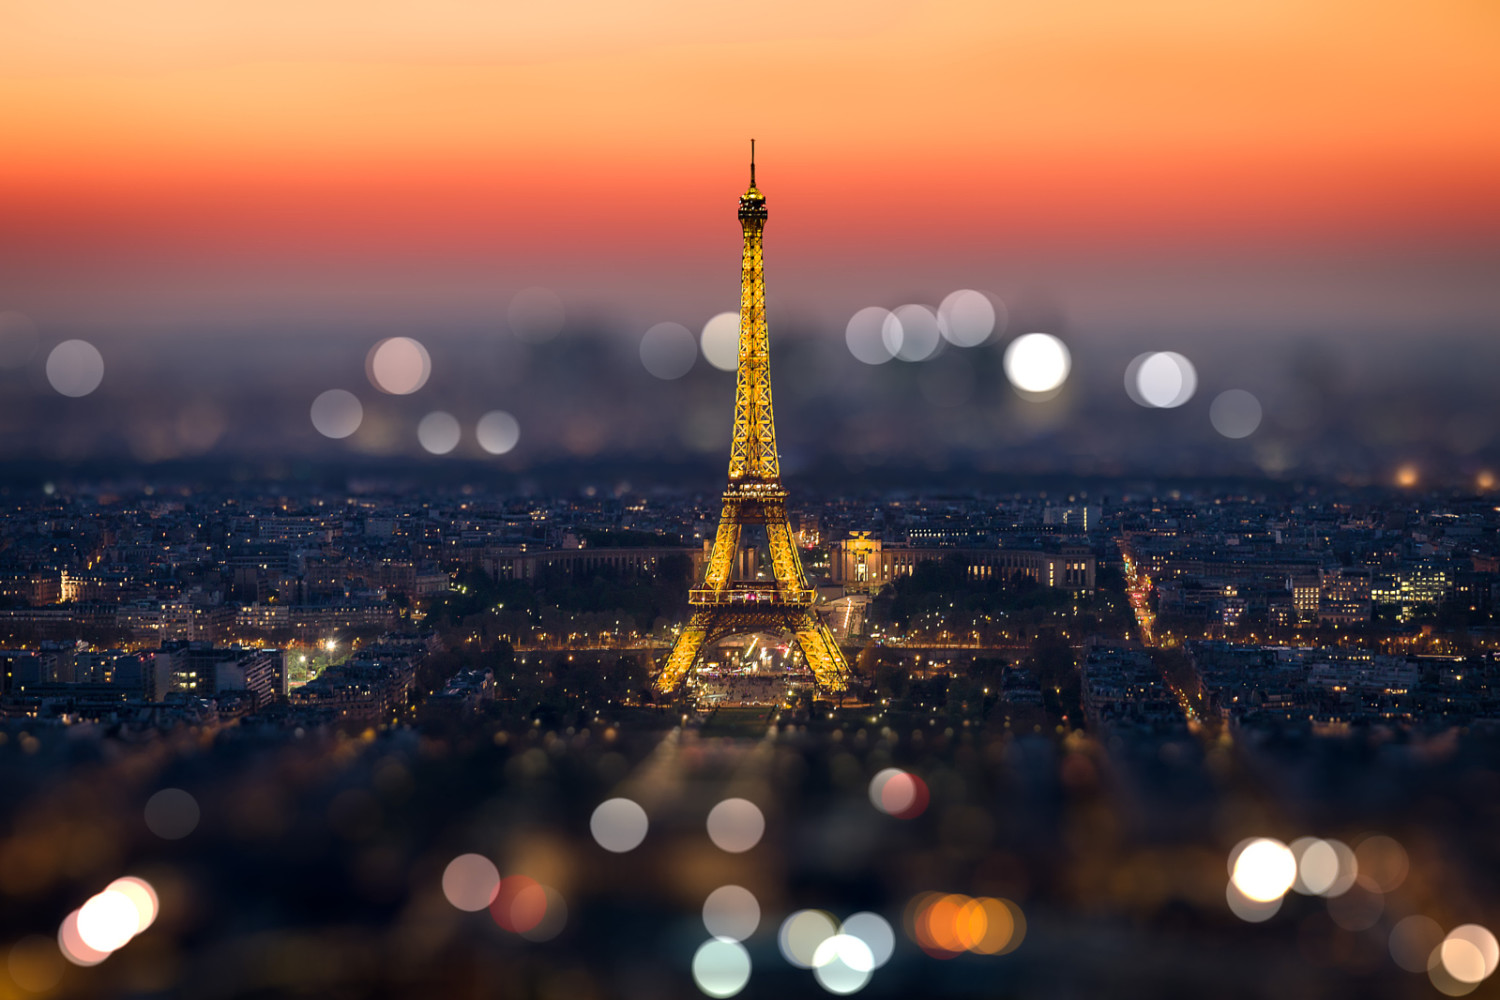 30+ Beautiful Bokeh Images That Capture Your Imagination